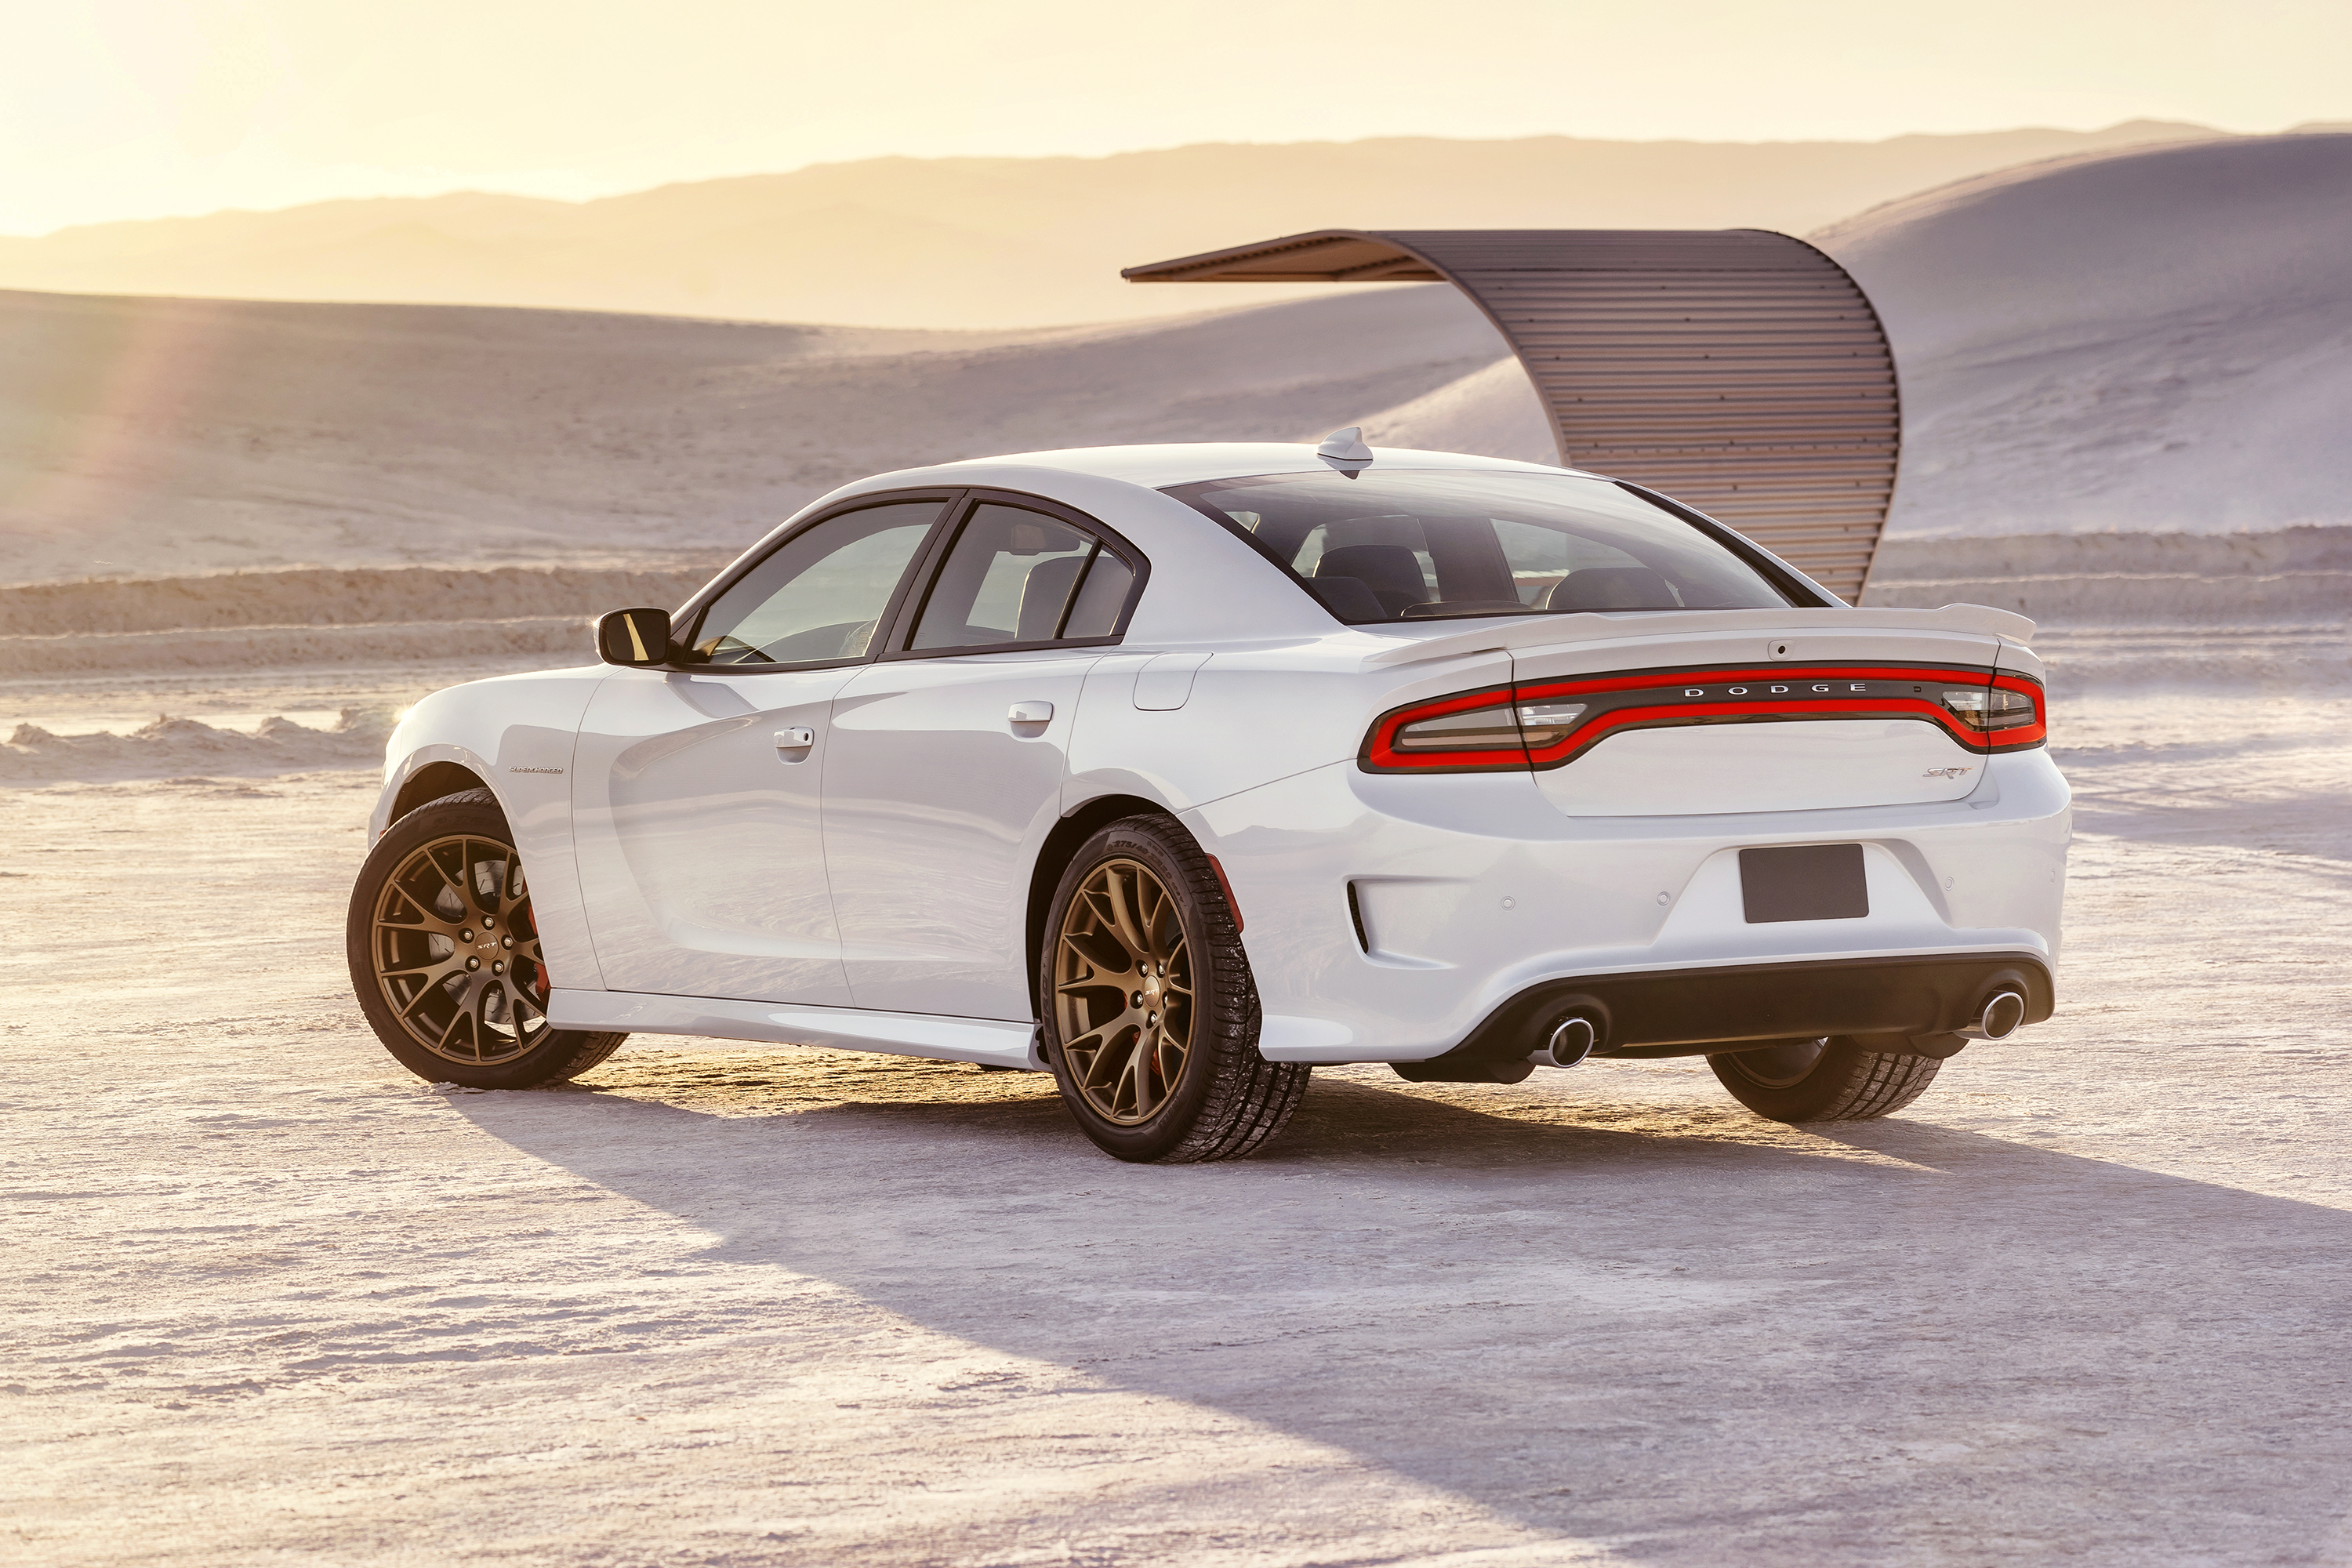 Srt Hellcat >> Dodge Charger SRT Hellcat – 707 hp V8 muscle saloon Paul Tan - Image 263823